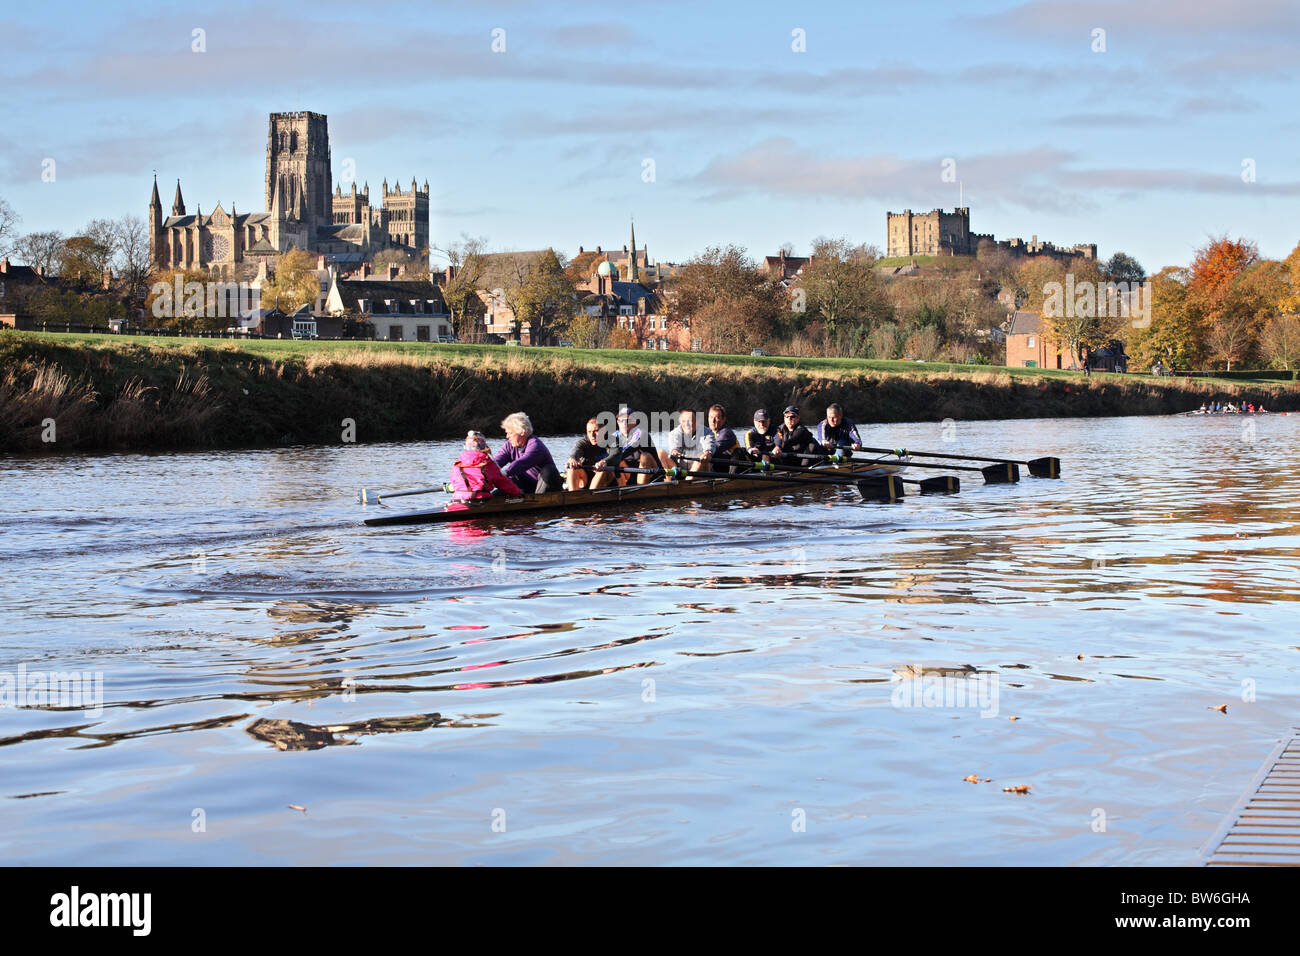 durham-castle-and-cathedral-make-a-backd